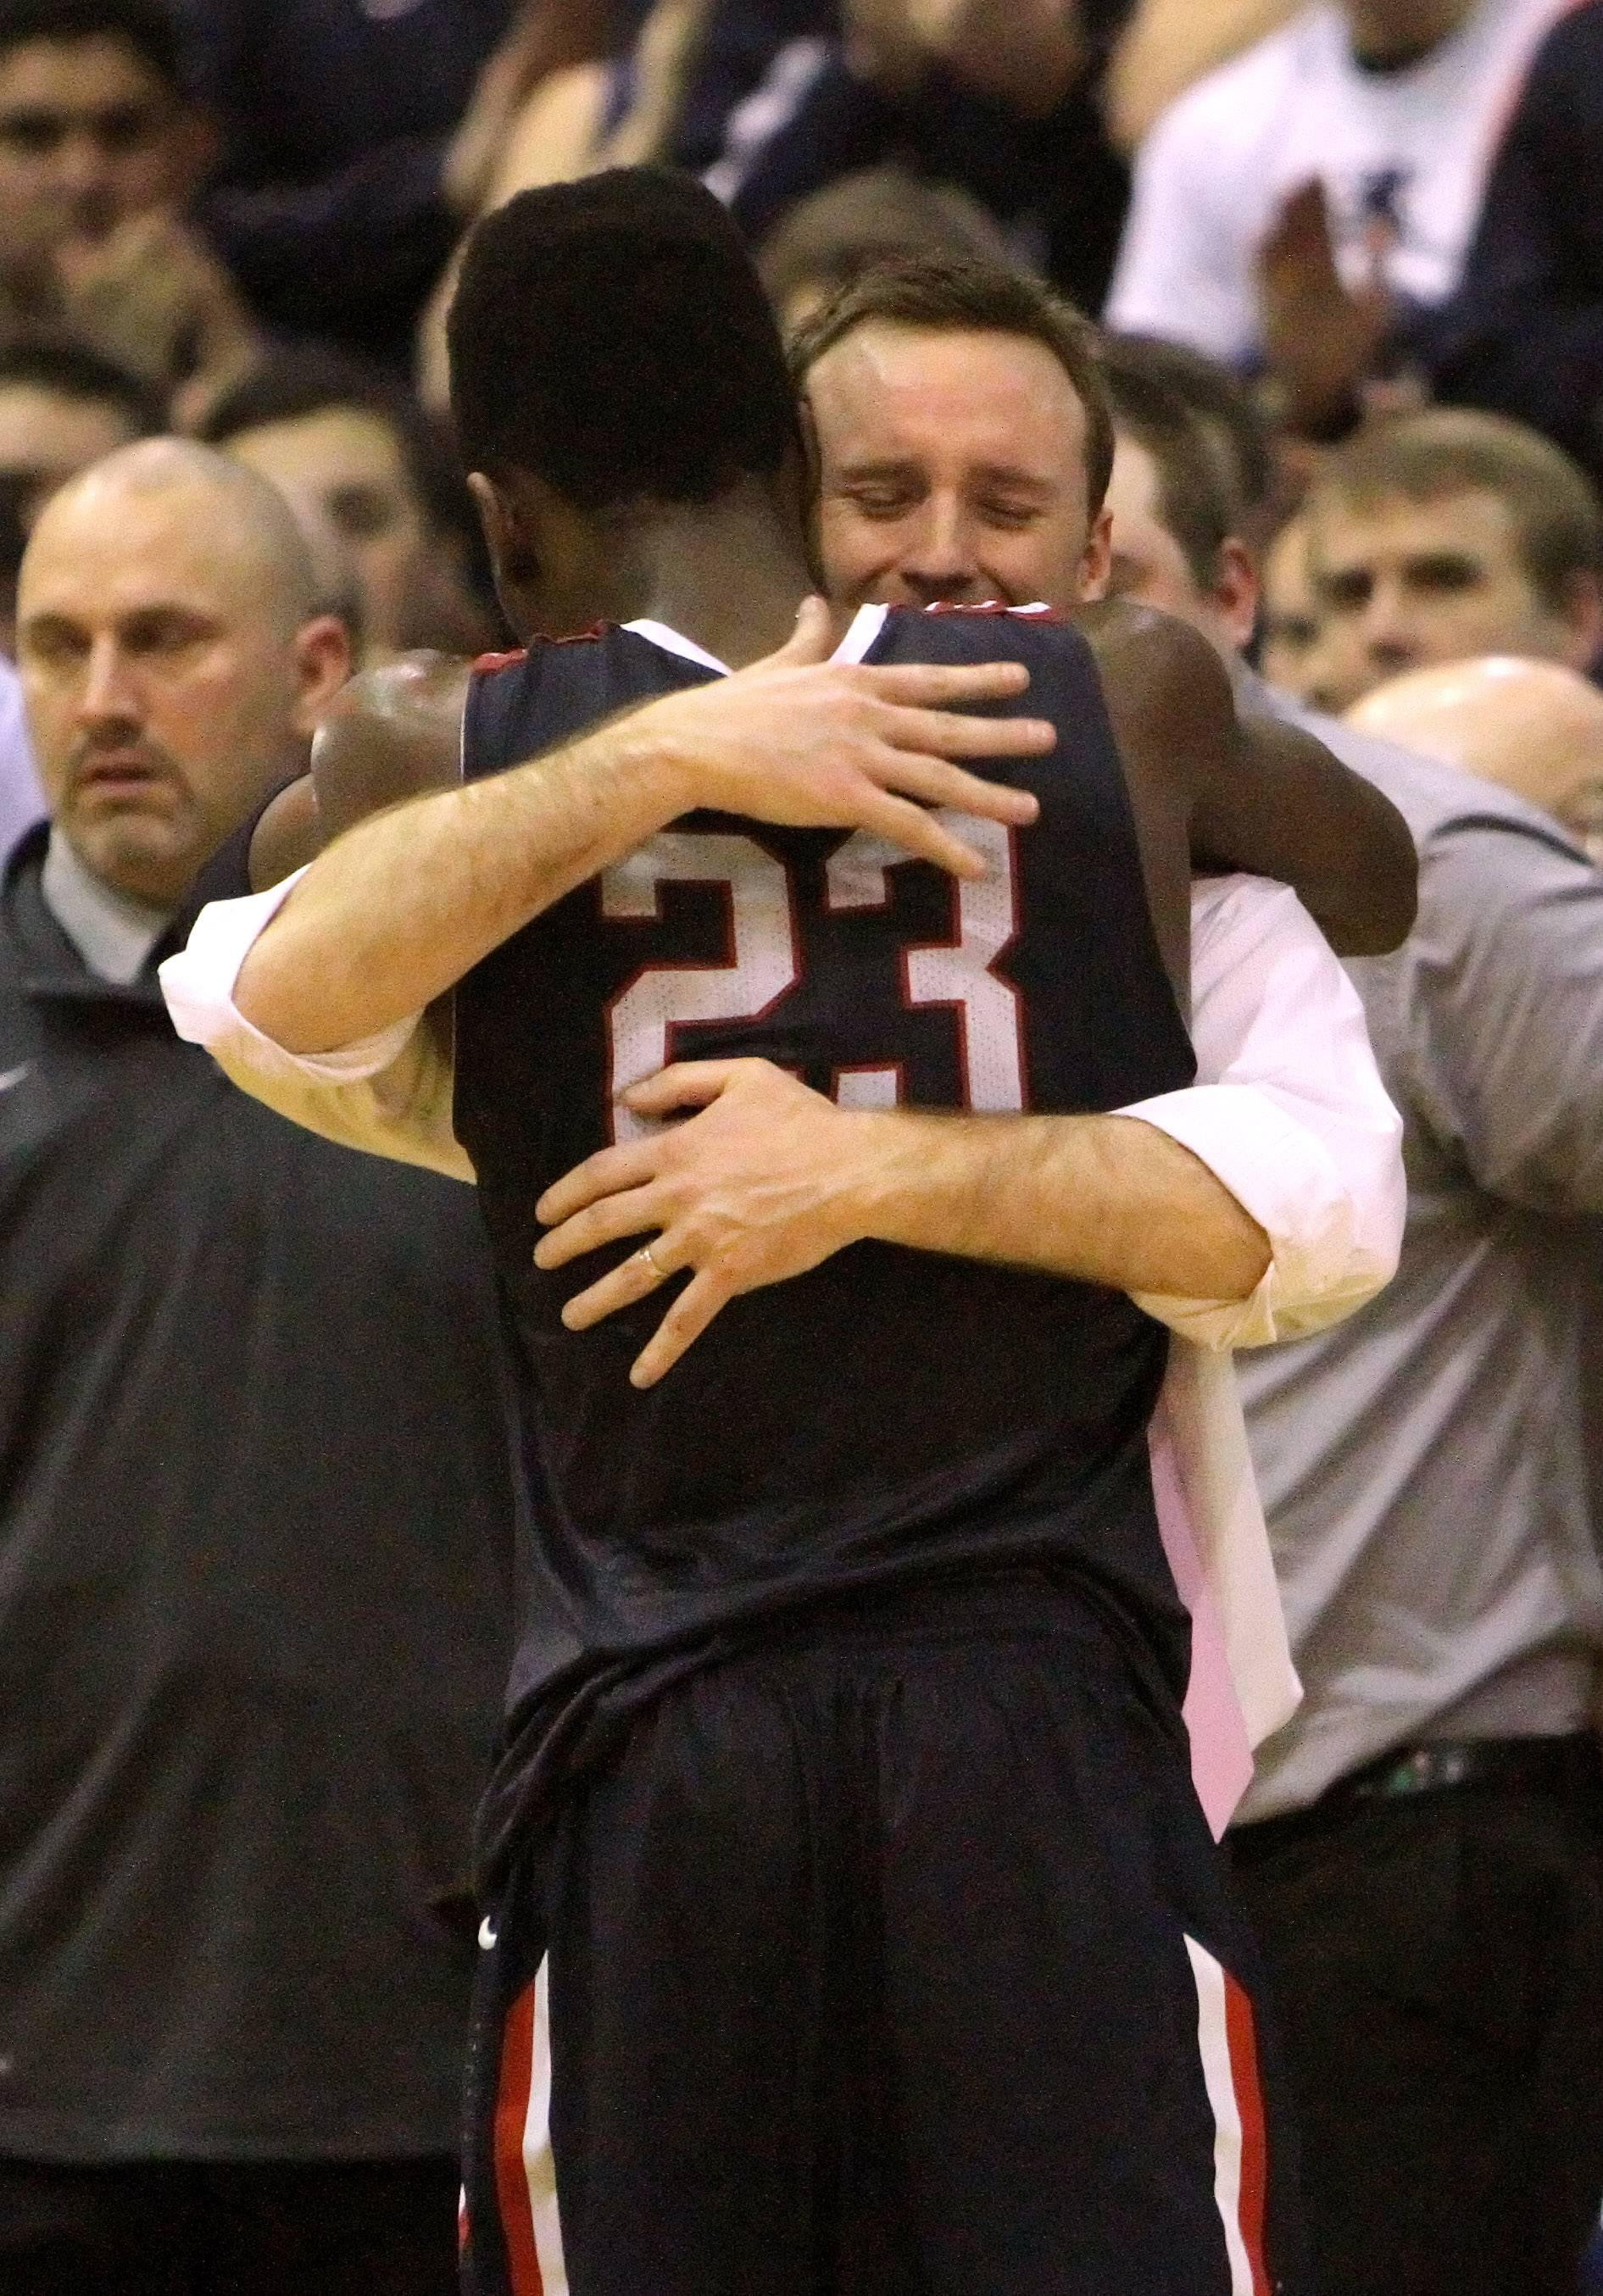 St. Viator coach Mike Howland embraces senior Ore Arogundade as he comes out of the game in the Class 4A sectional semifinal at Lake Zurich on Tuesday.